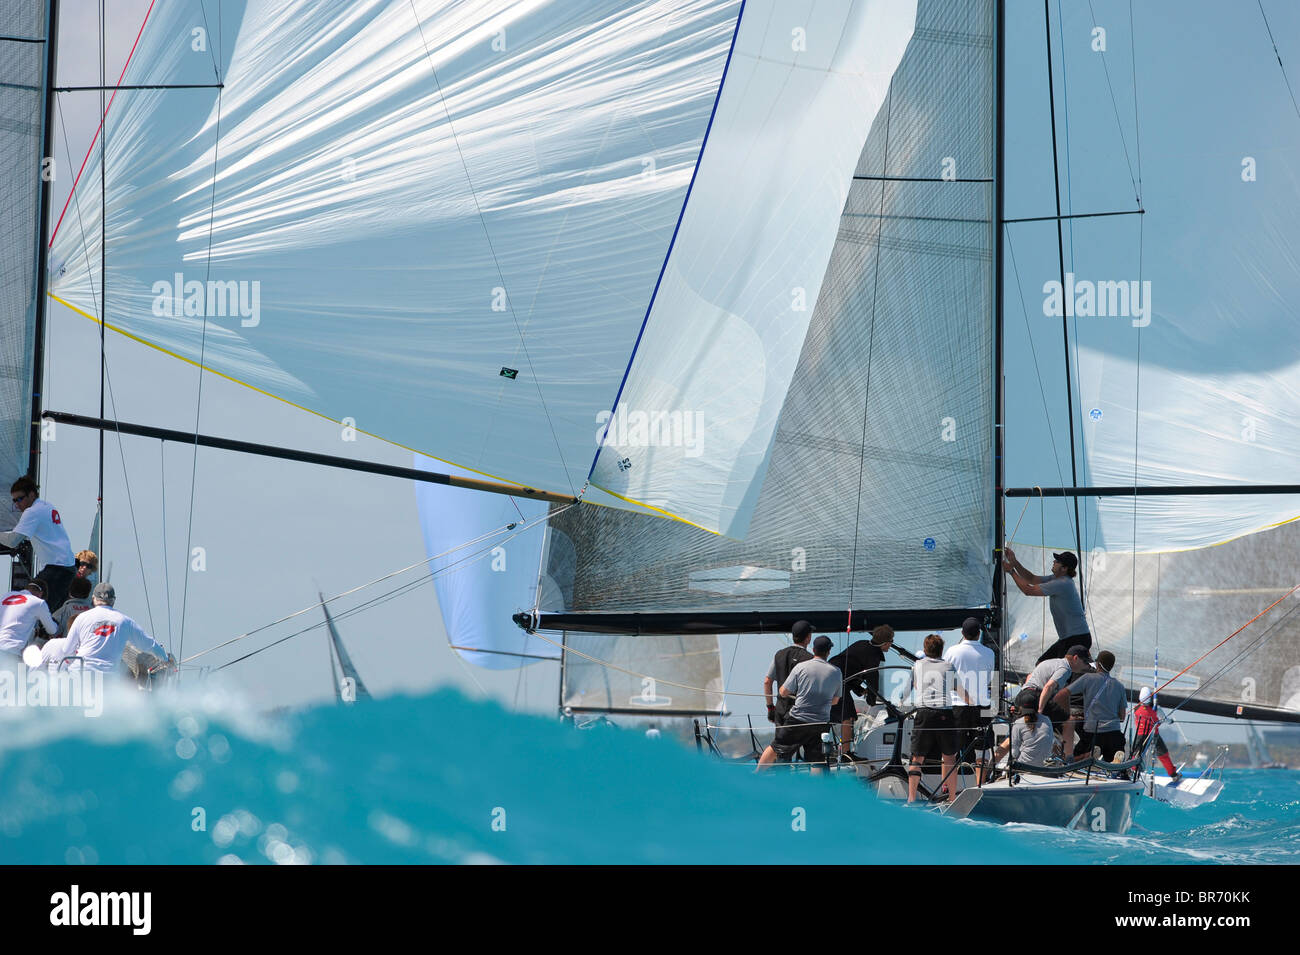 Farr 40 downwind during a race at the 2009 Acura Miami Grand Prix, day 3, 7th March. - Stock Image